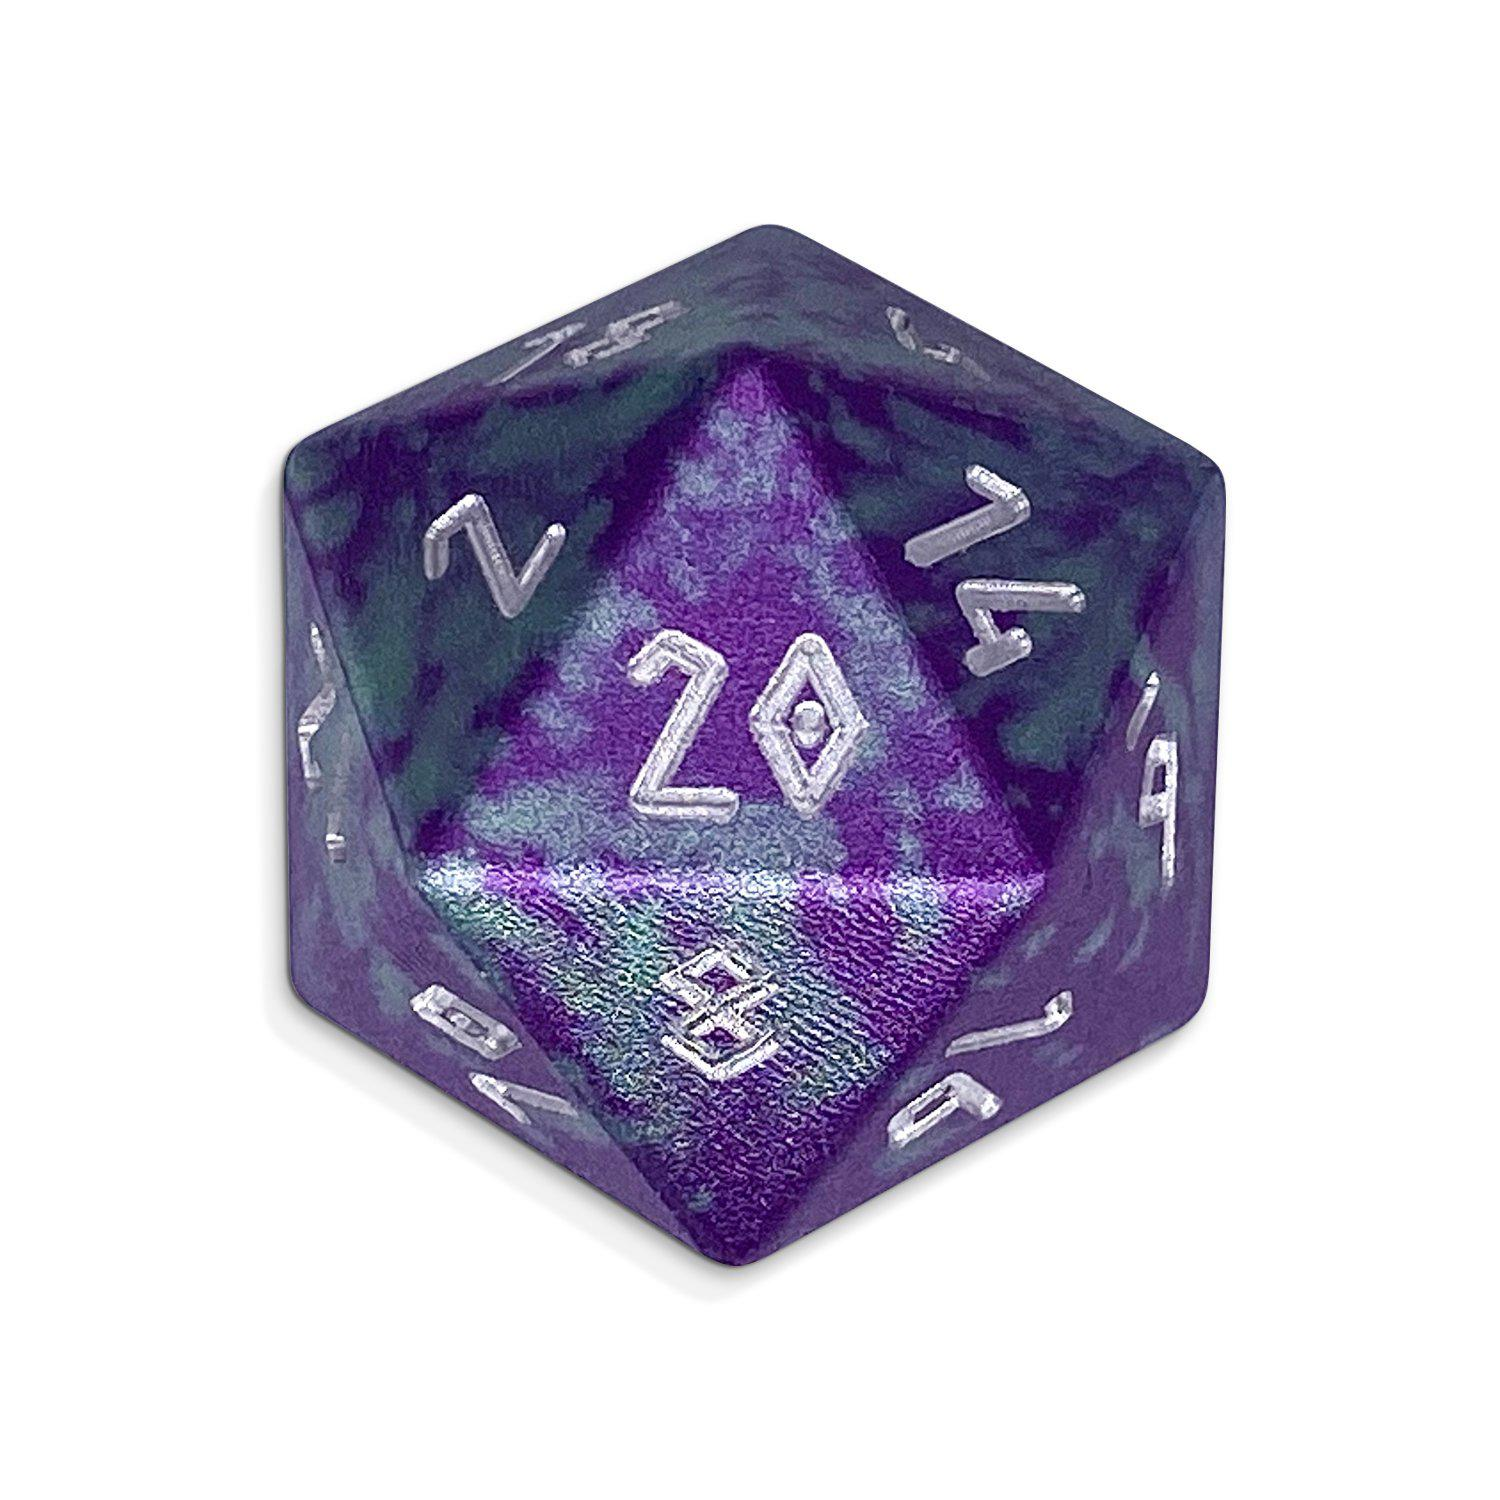 Single Wondrous Dice® D20 in Faerie Fire by Norse Foundry 6063 Aircraft Grade Aluminum